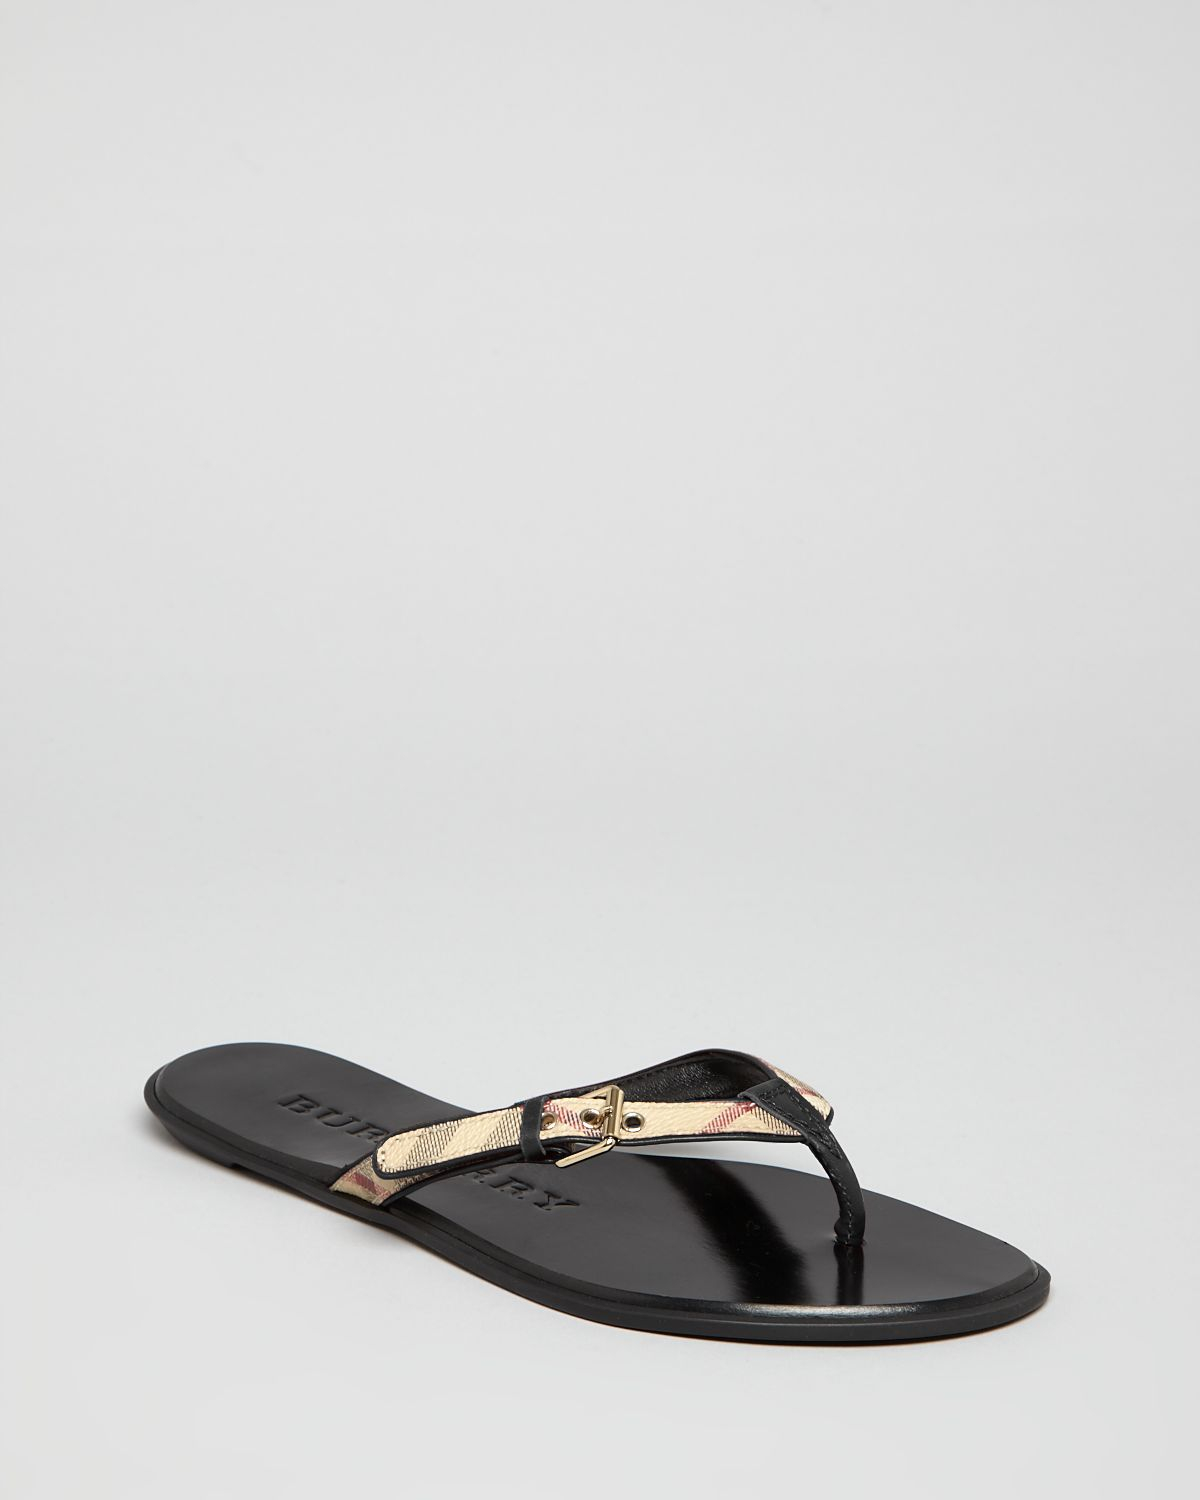 Lyst Burberry Flip Flop Sandals Parsons Check Thong In Black